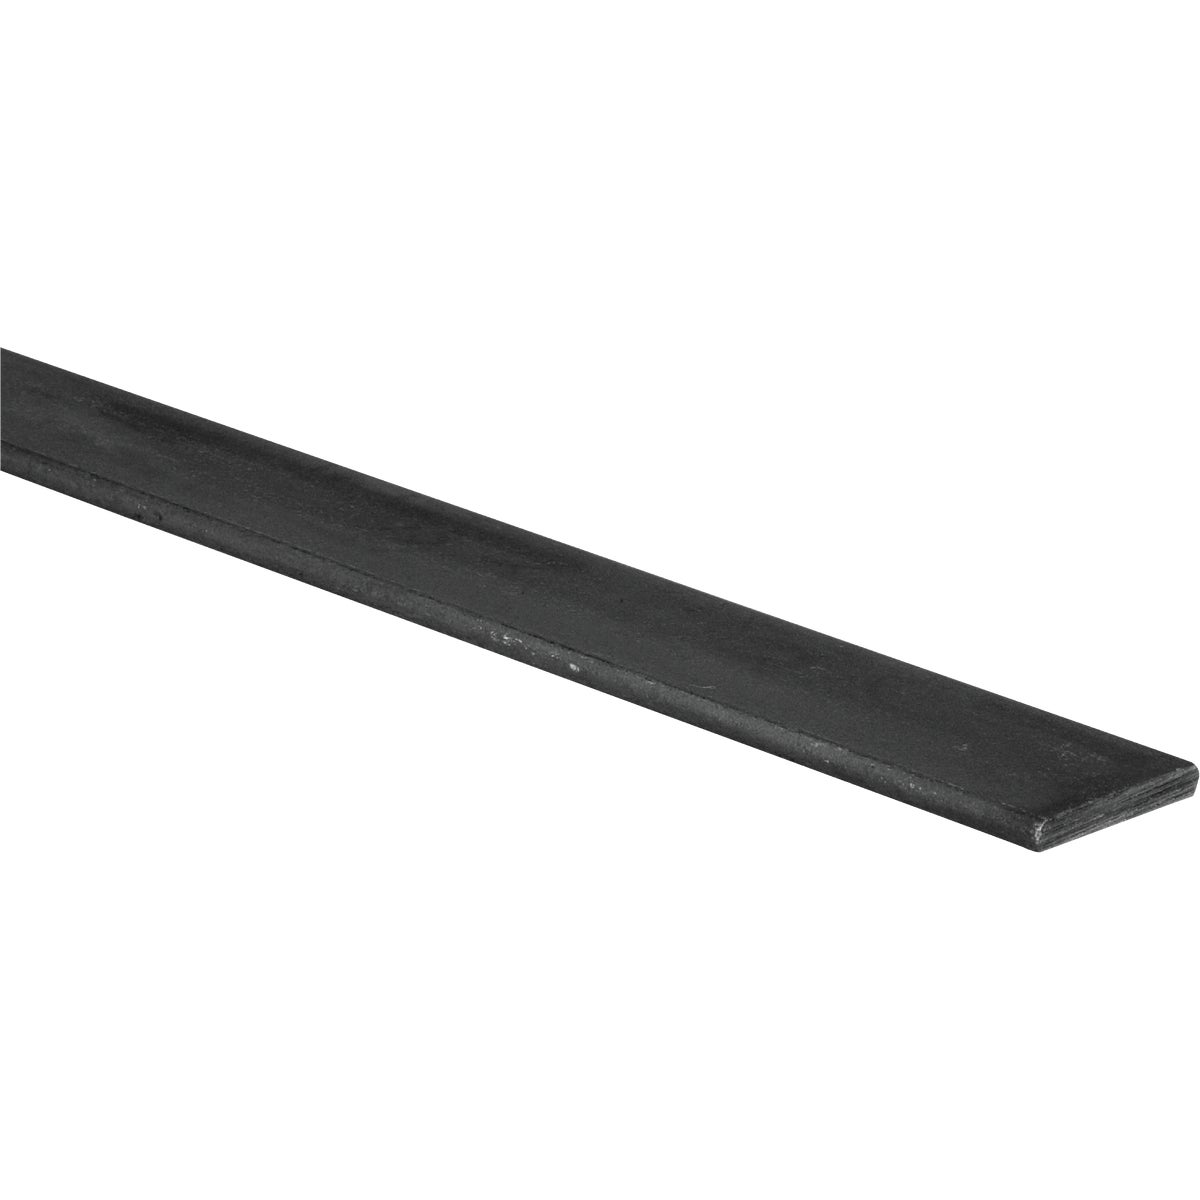 1/8X1-1/4X4' HR FLAT BAR - N215574 by National Mfg Co